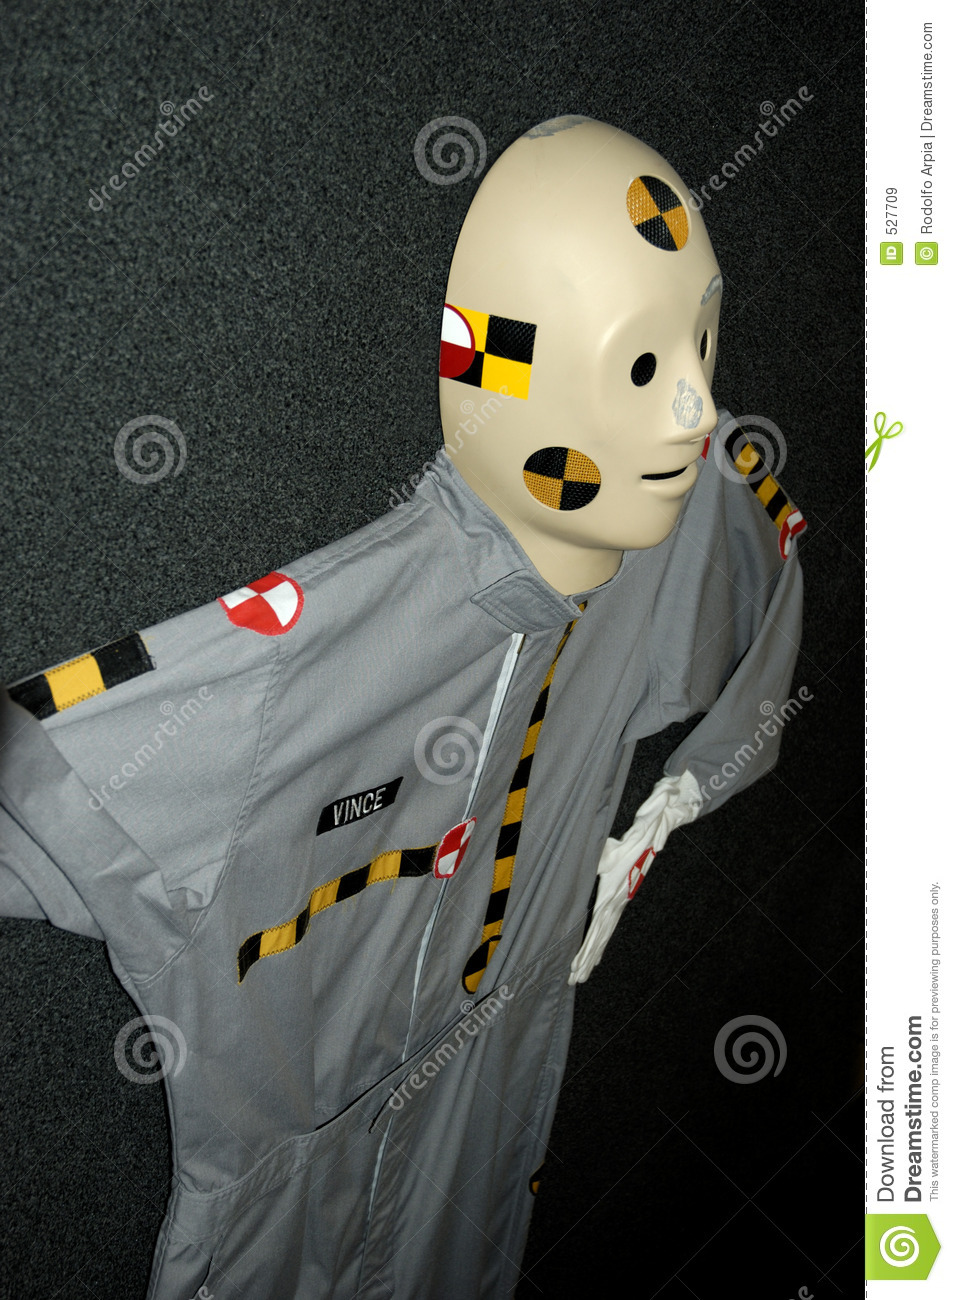 Crash Test Dummy stock image Image of dummy automotive  527709